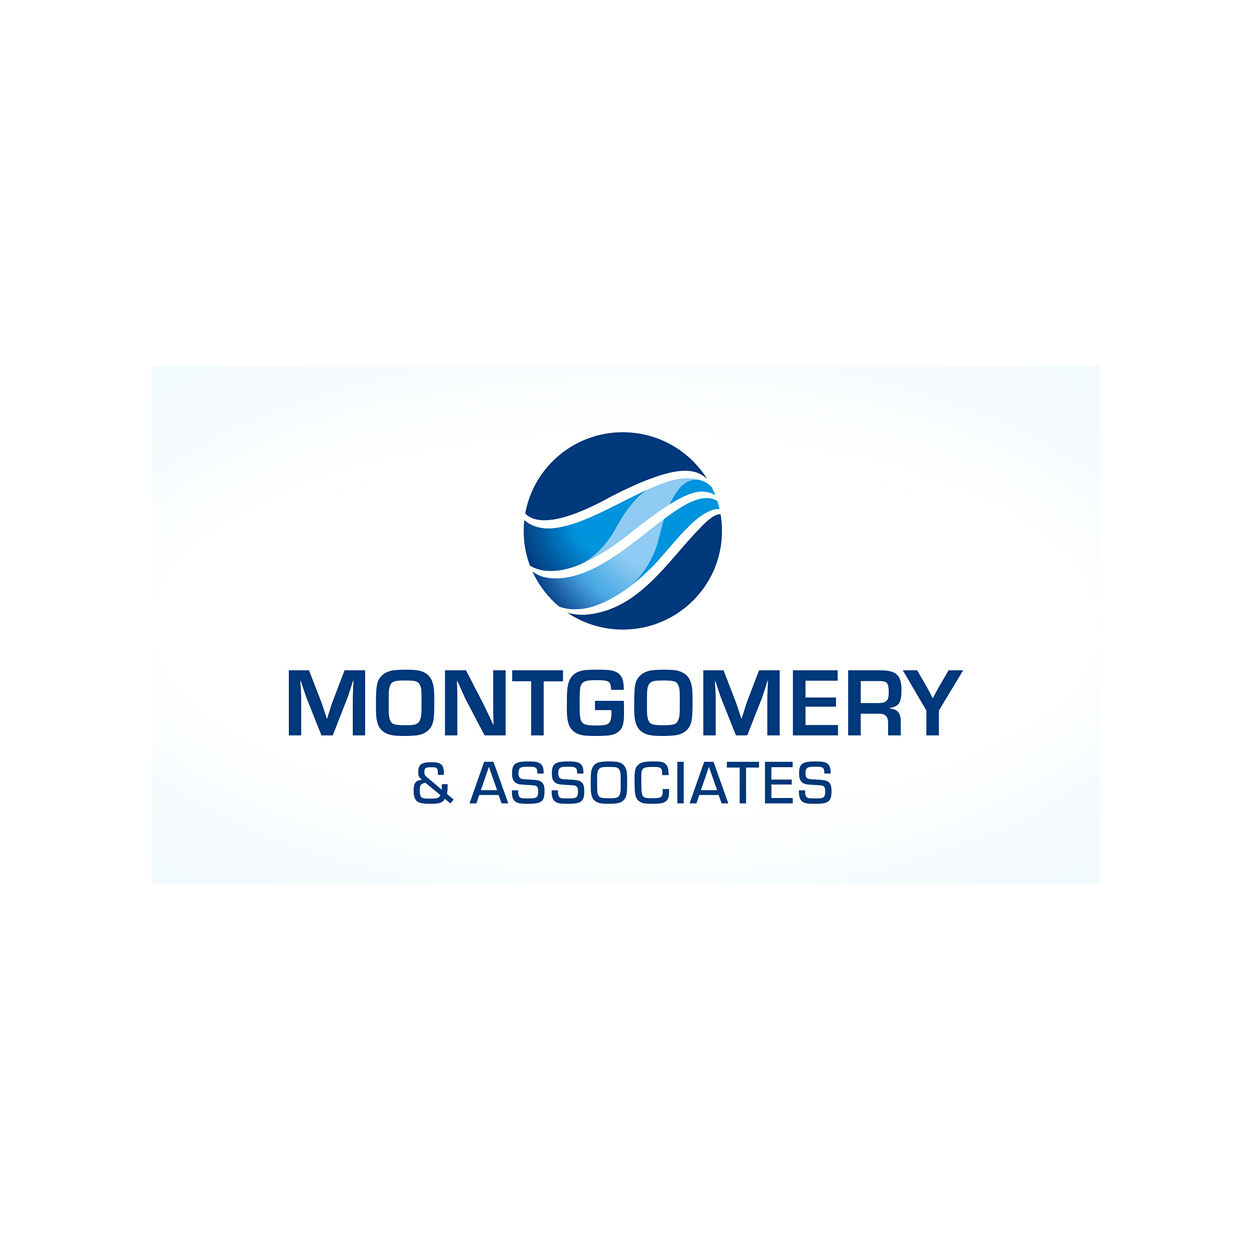 Montgomery & Associates